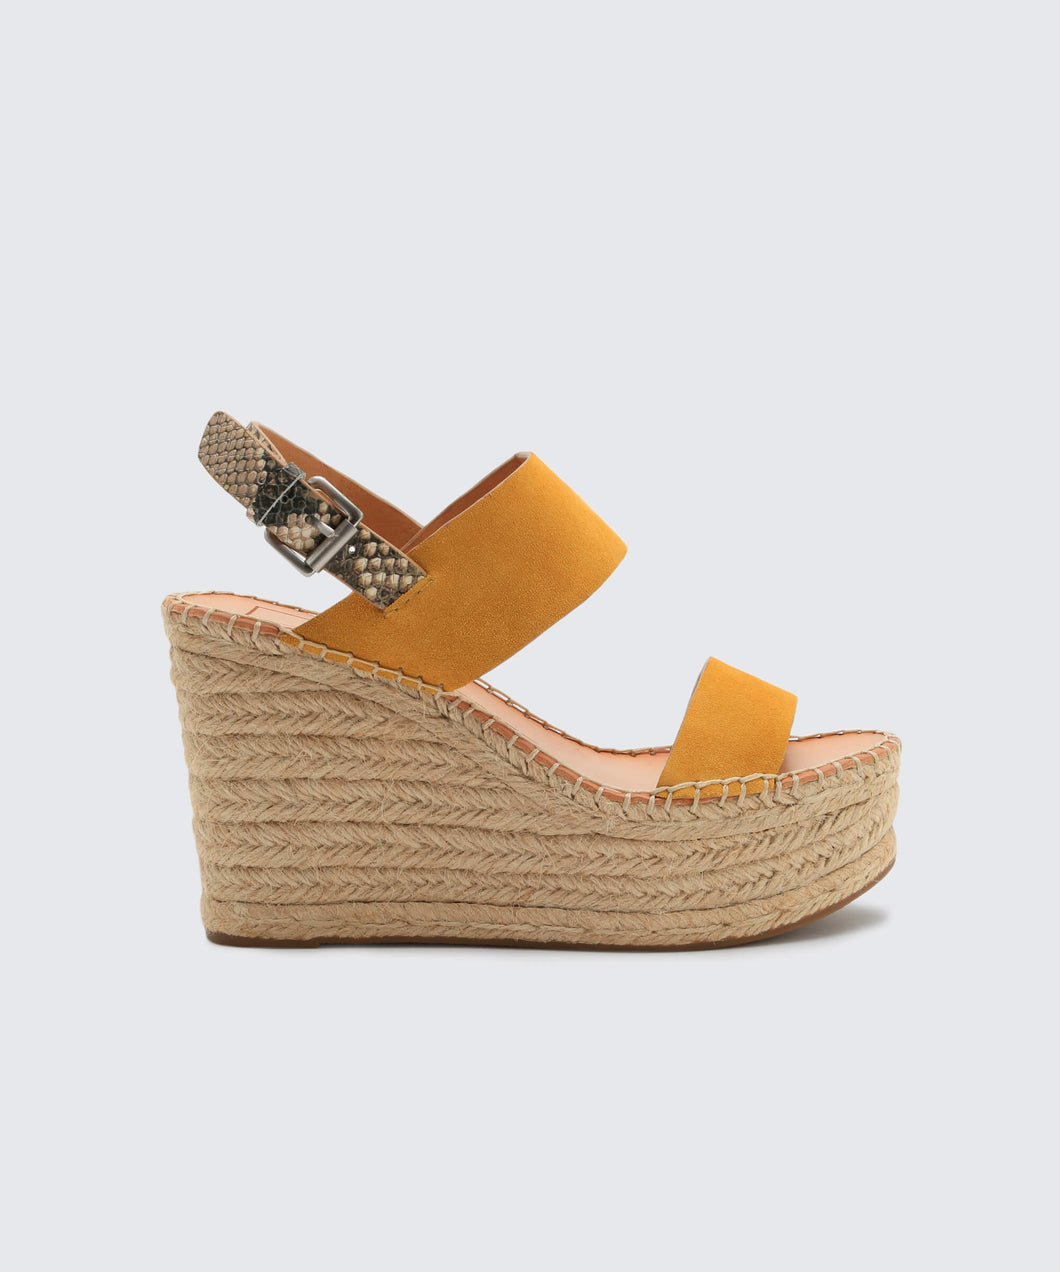 SPIRO WEDGES IN HONEY -   Dolce Vita